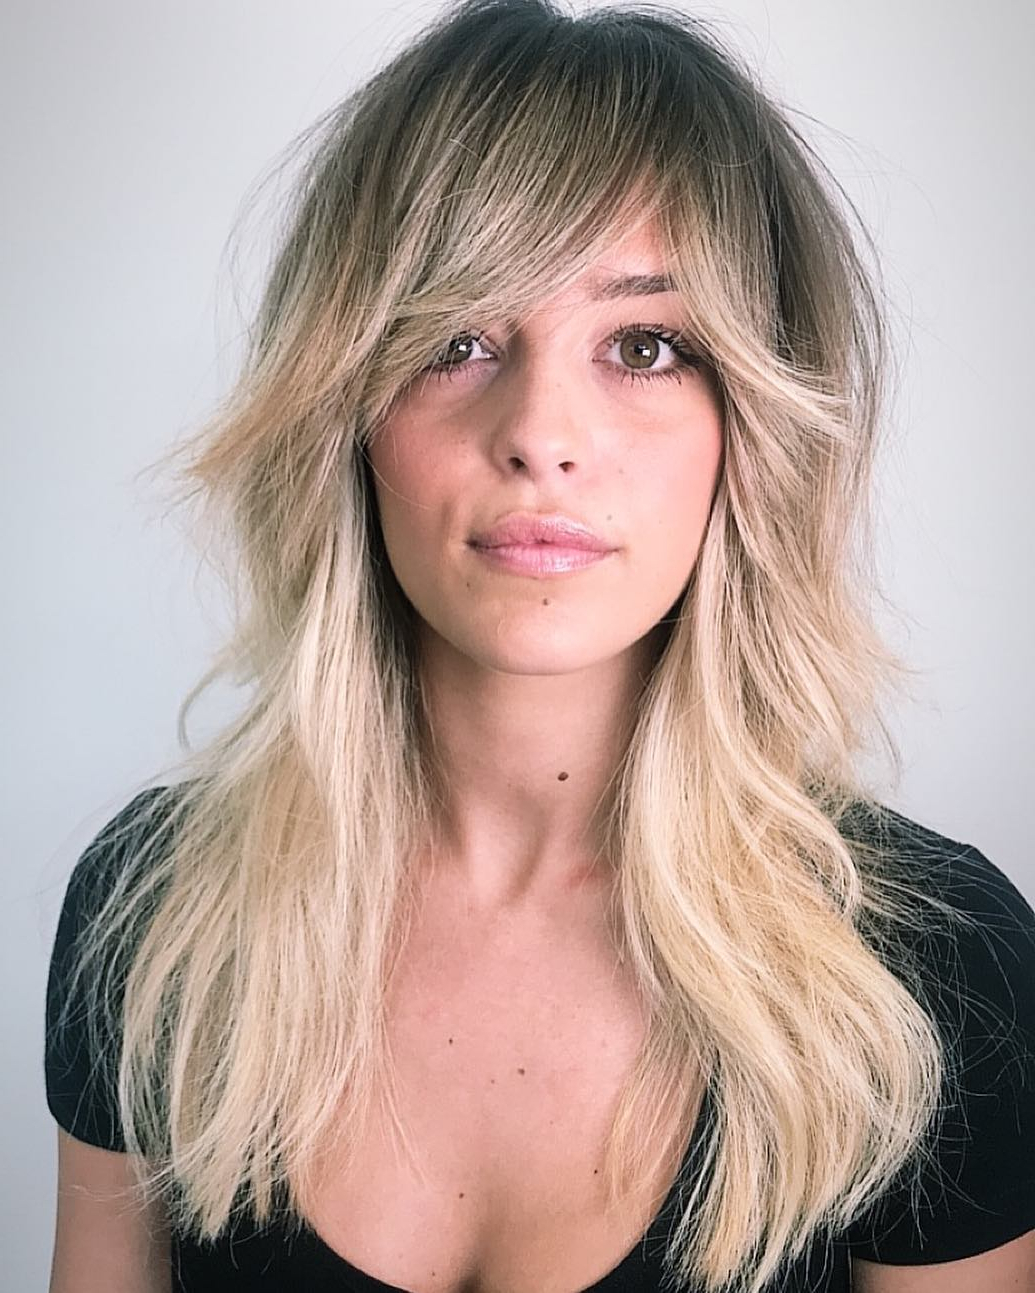 60 Most Instagrammable Hairstyles With Bangs In 2020 Pertaining To Newest One Side Bangs Hairstyles With Feather Effect (View 6 of 20)